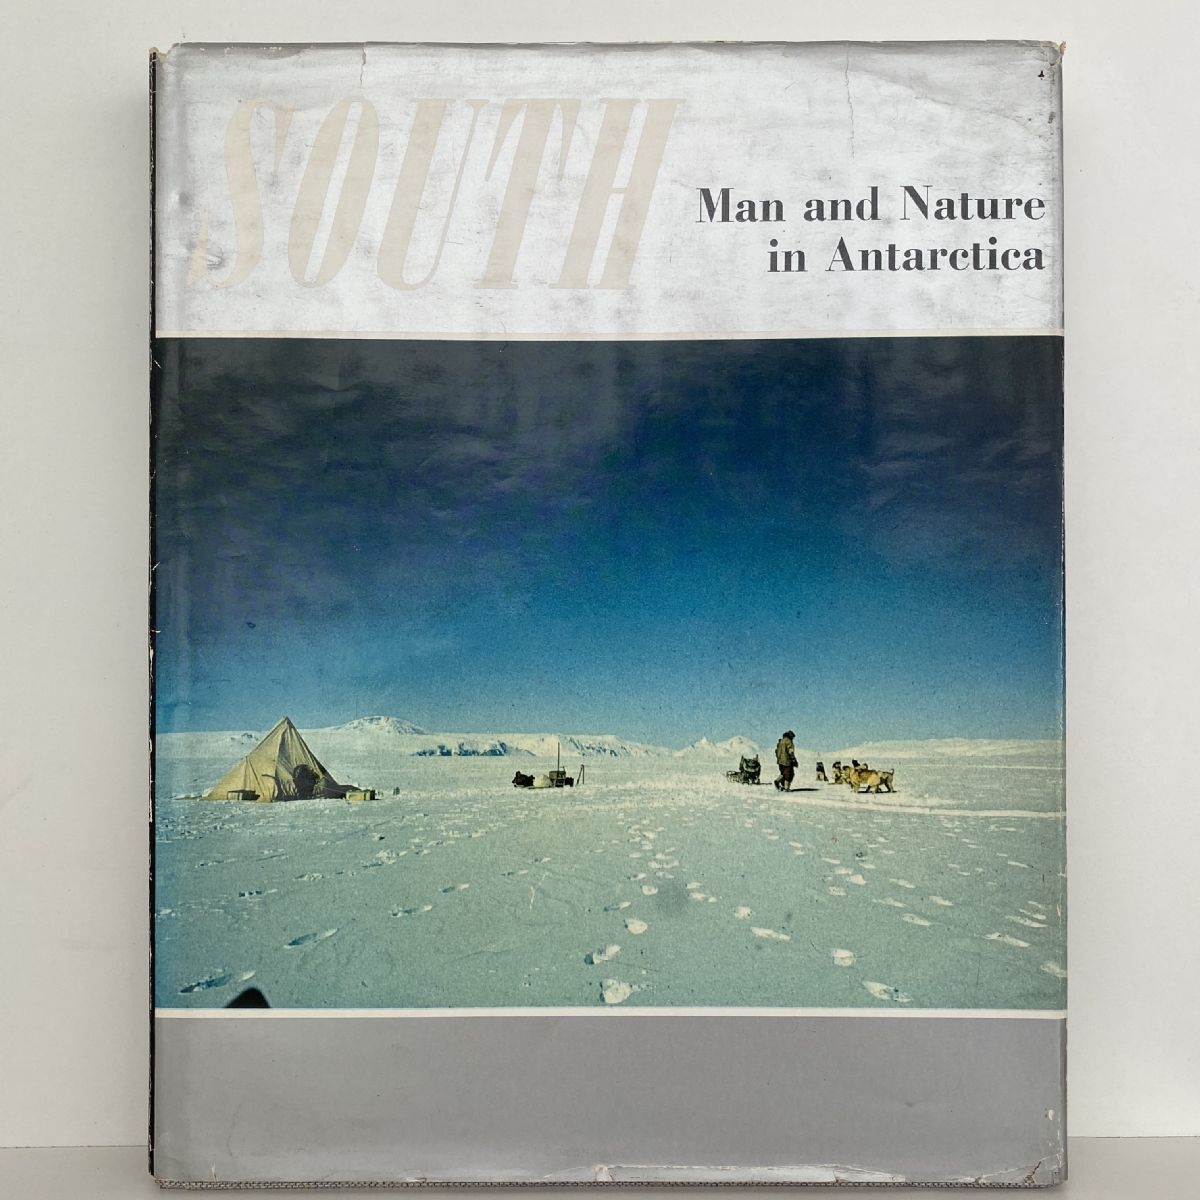 SOUTH: Man and Nature in Antarctica